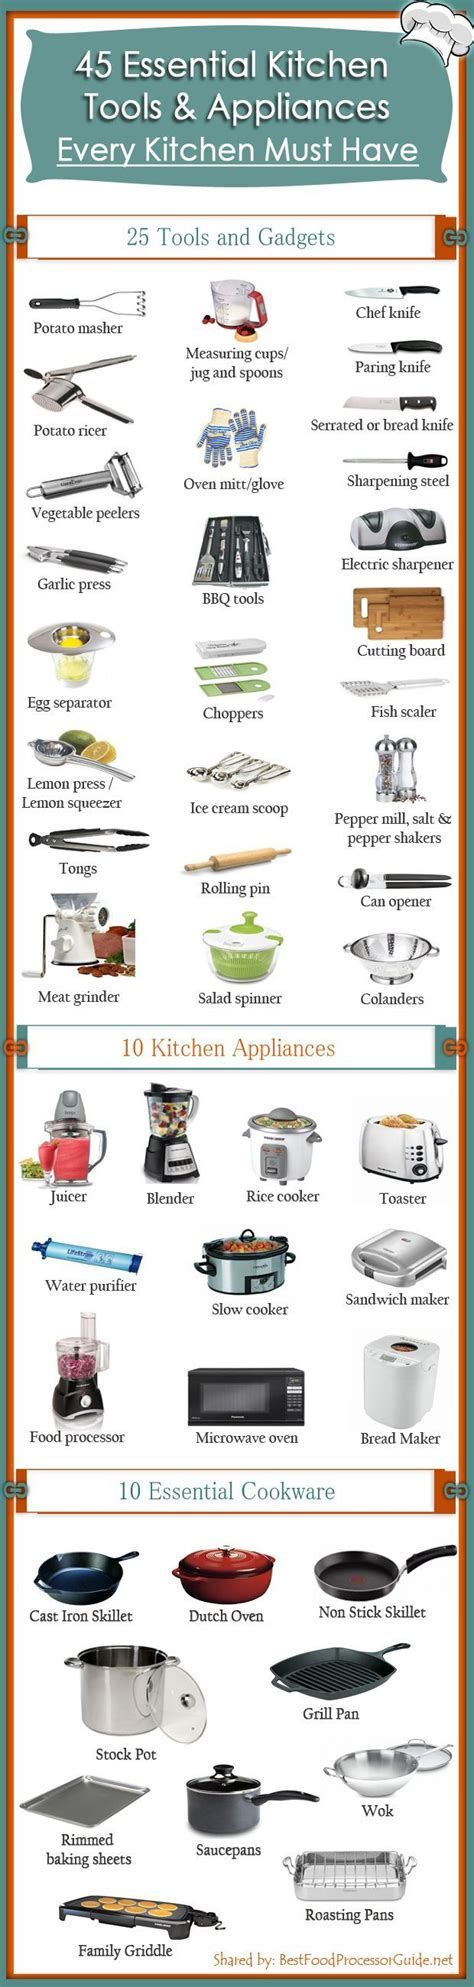 kitchen needs list best 25 kitchen tools ideas on pinterest kitchen tools